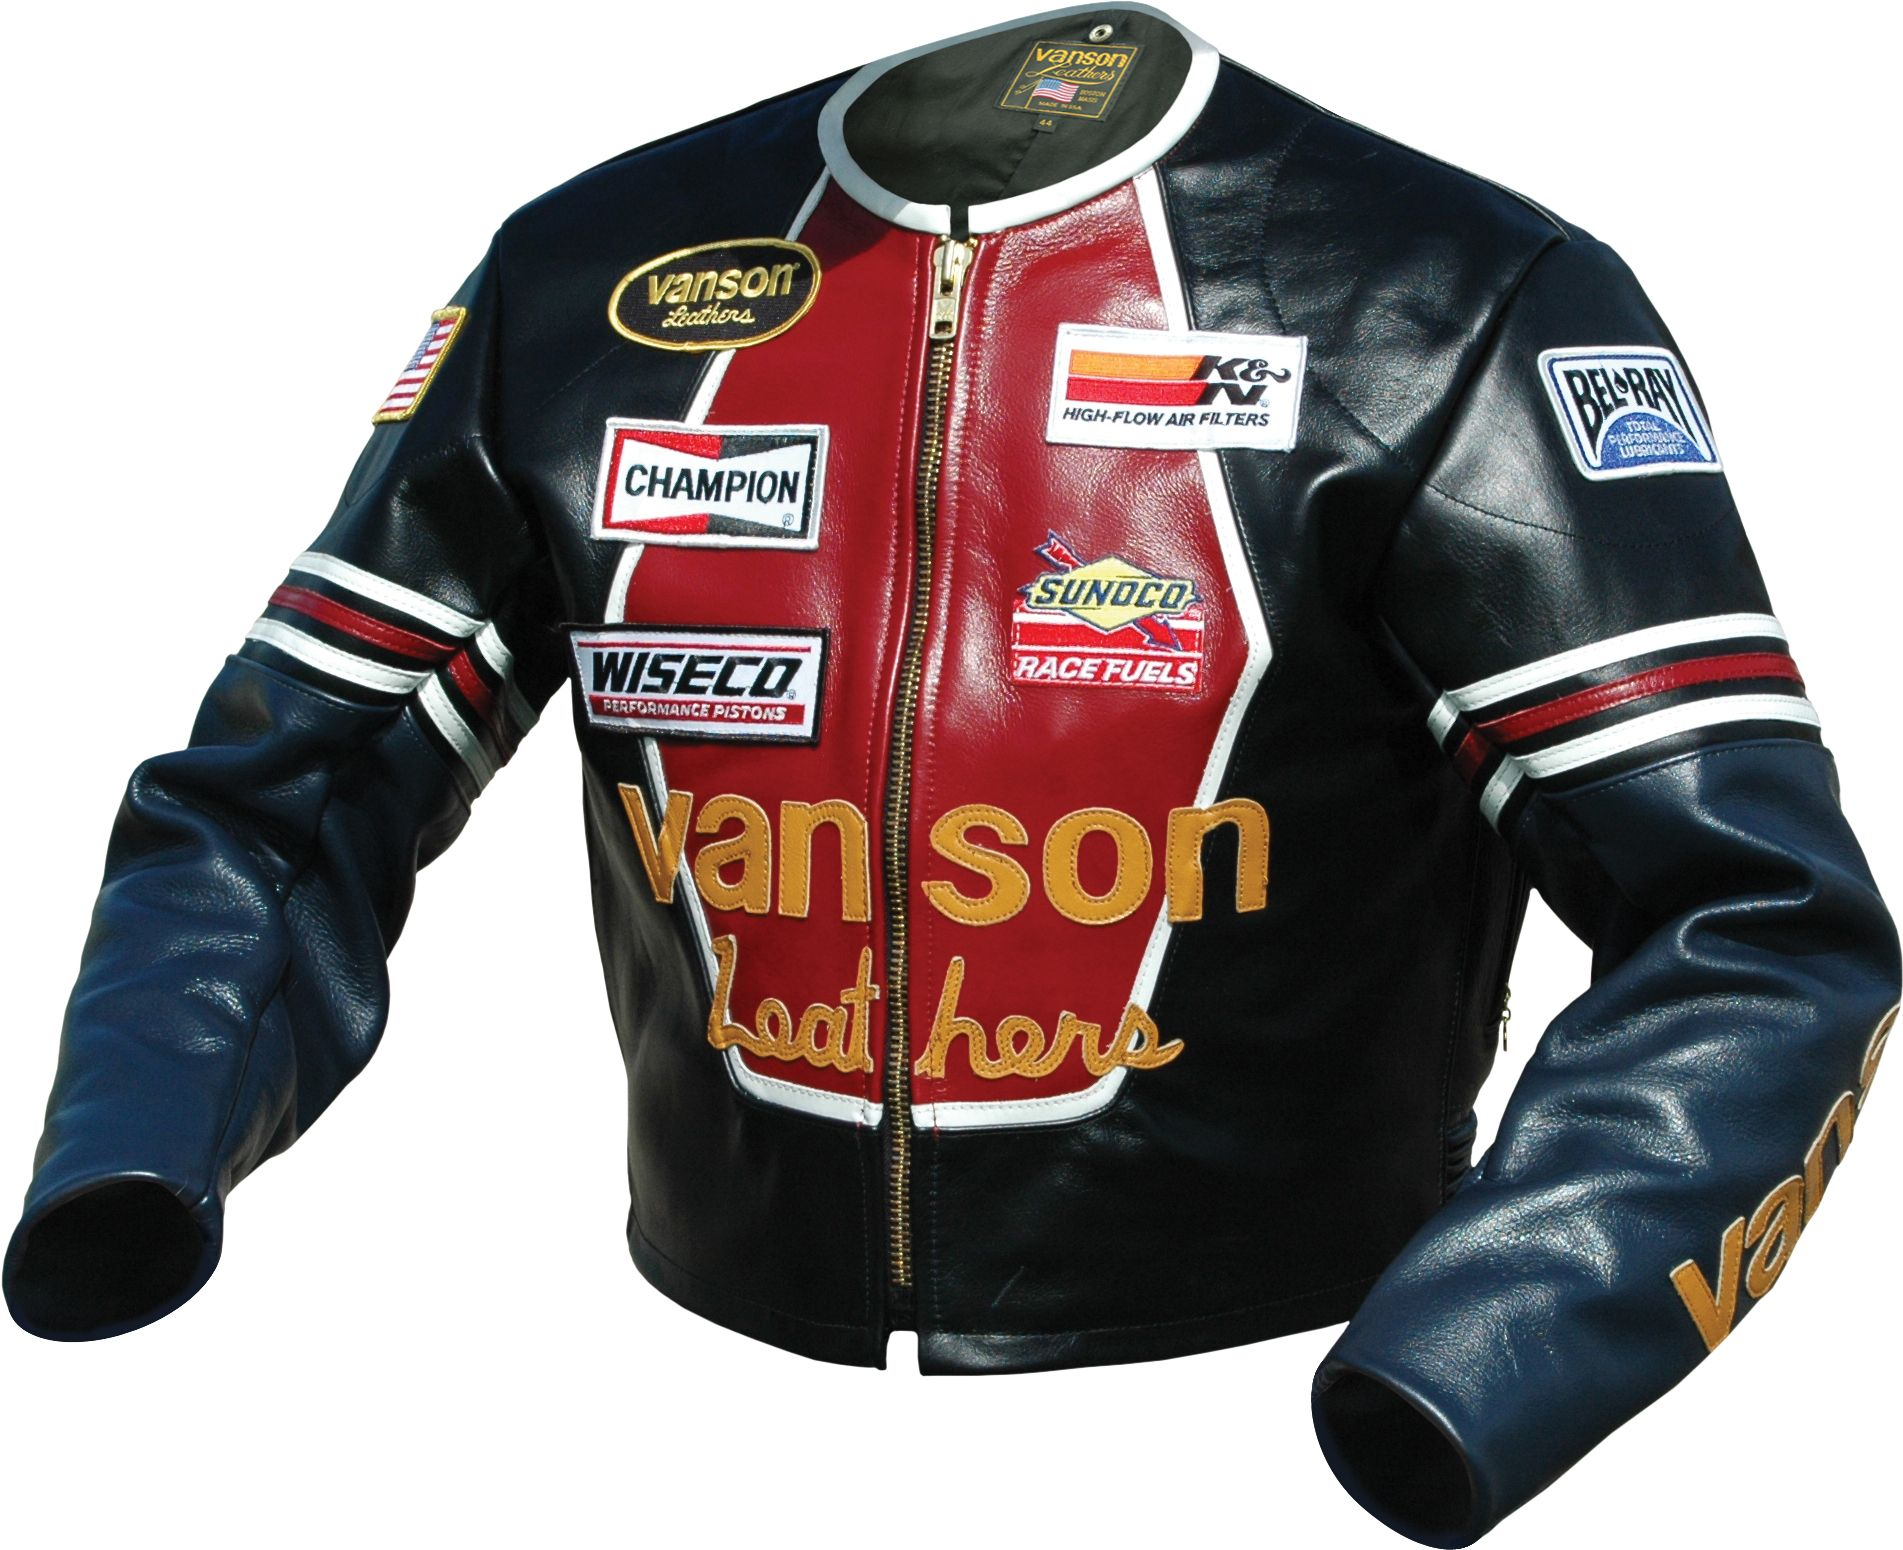 The Star jacket from Vanson Leathers. From a review of 6